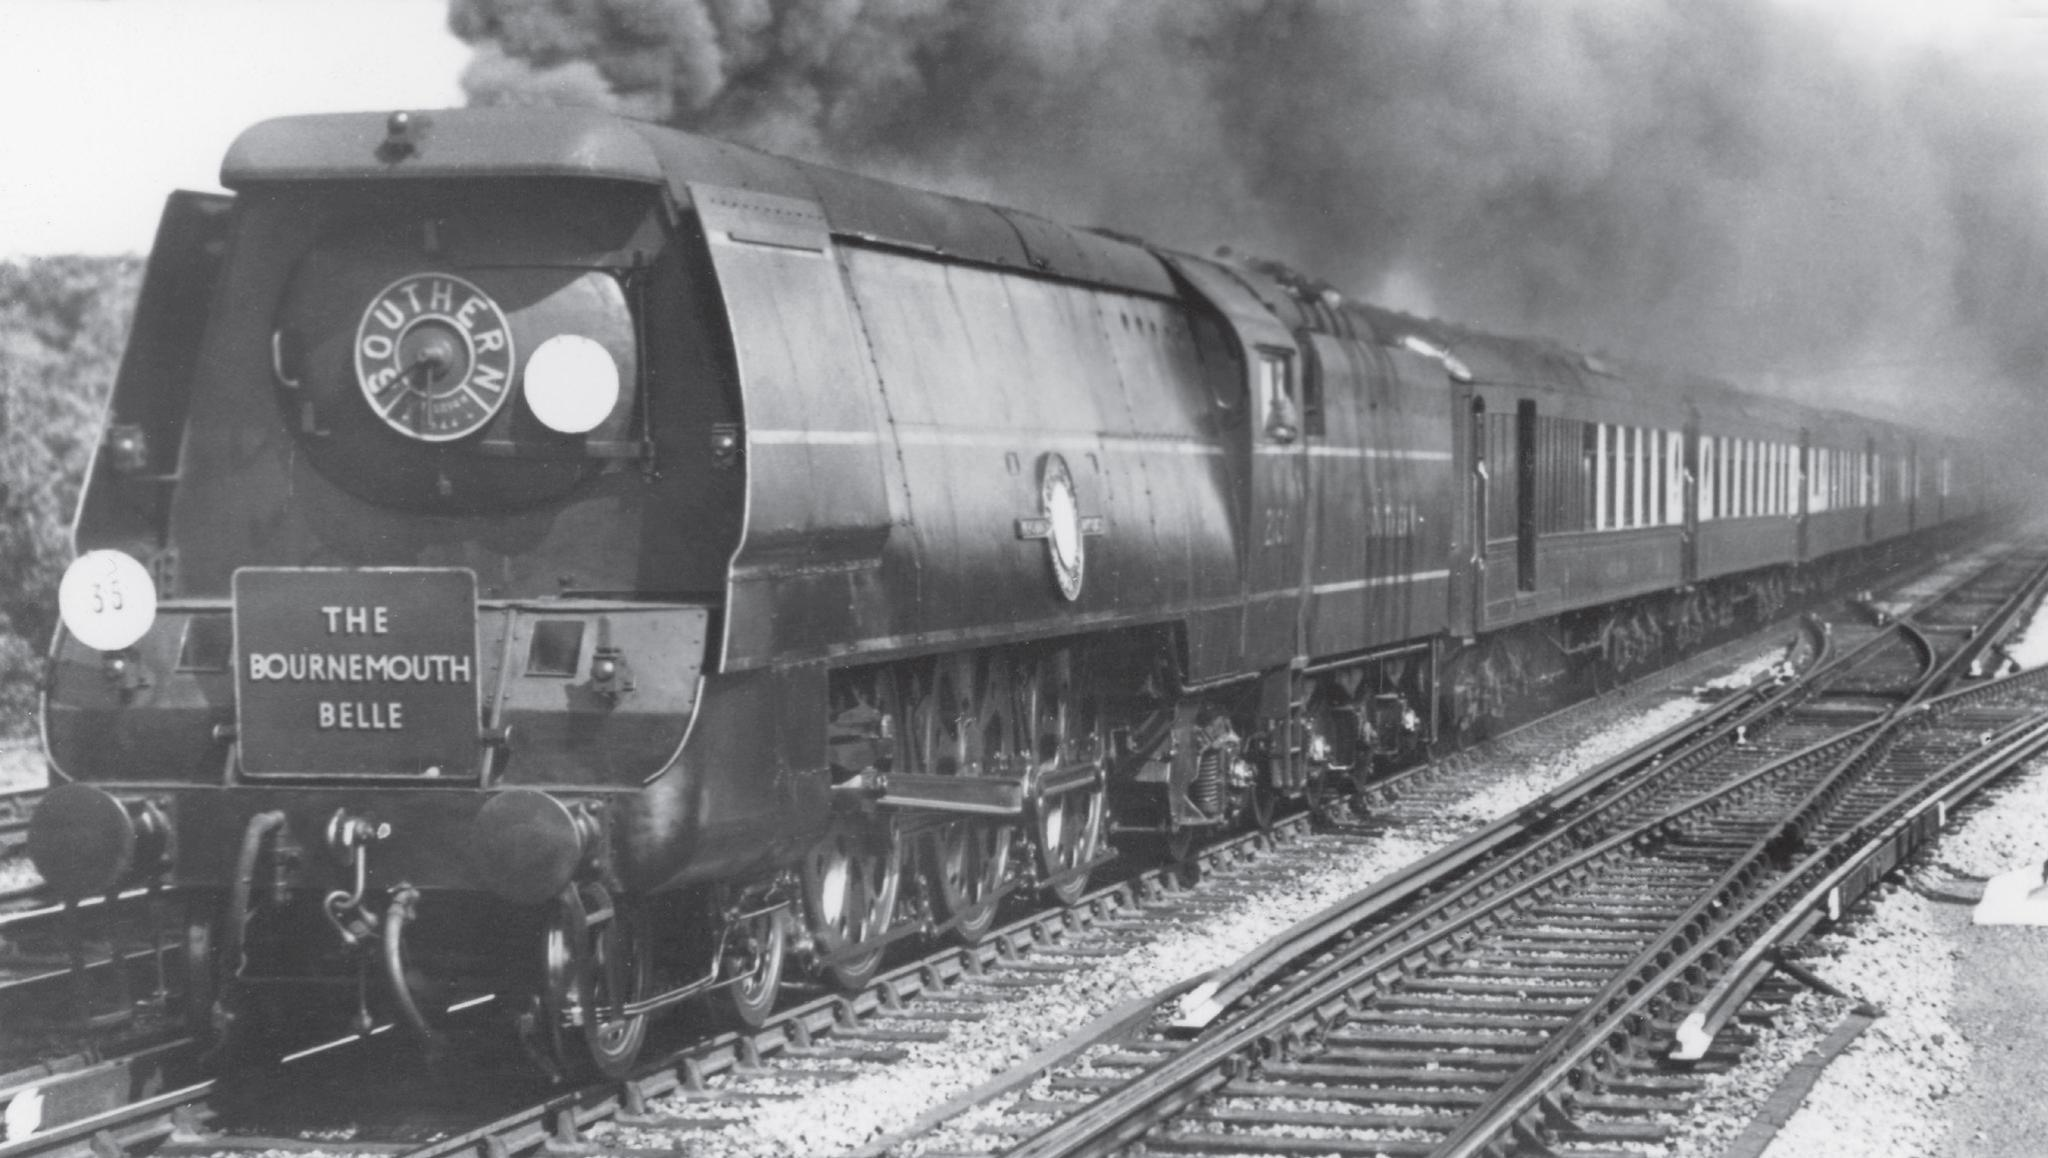 All aboard the luxury train taking a look back through time at the emergence of luxury railway travel